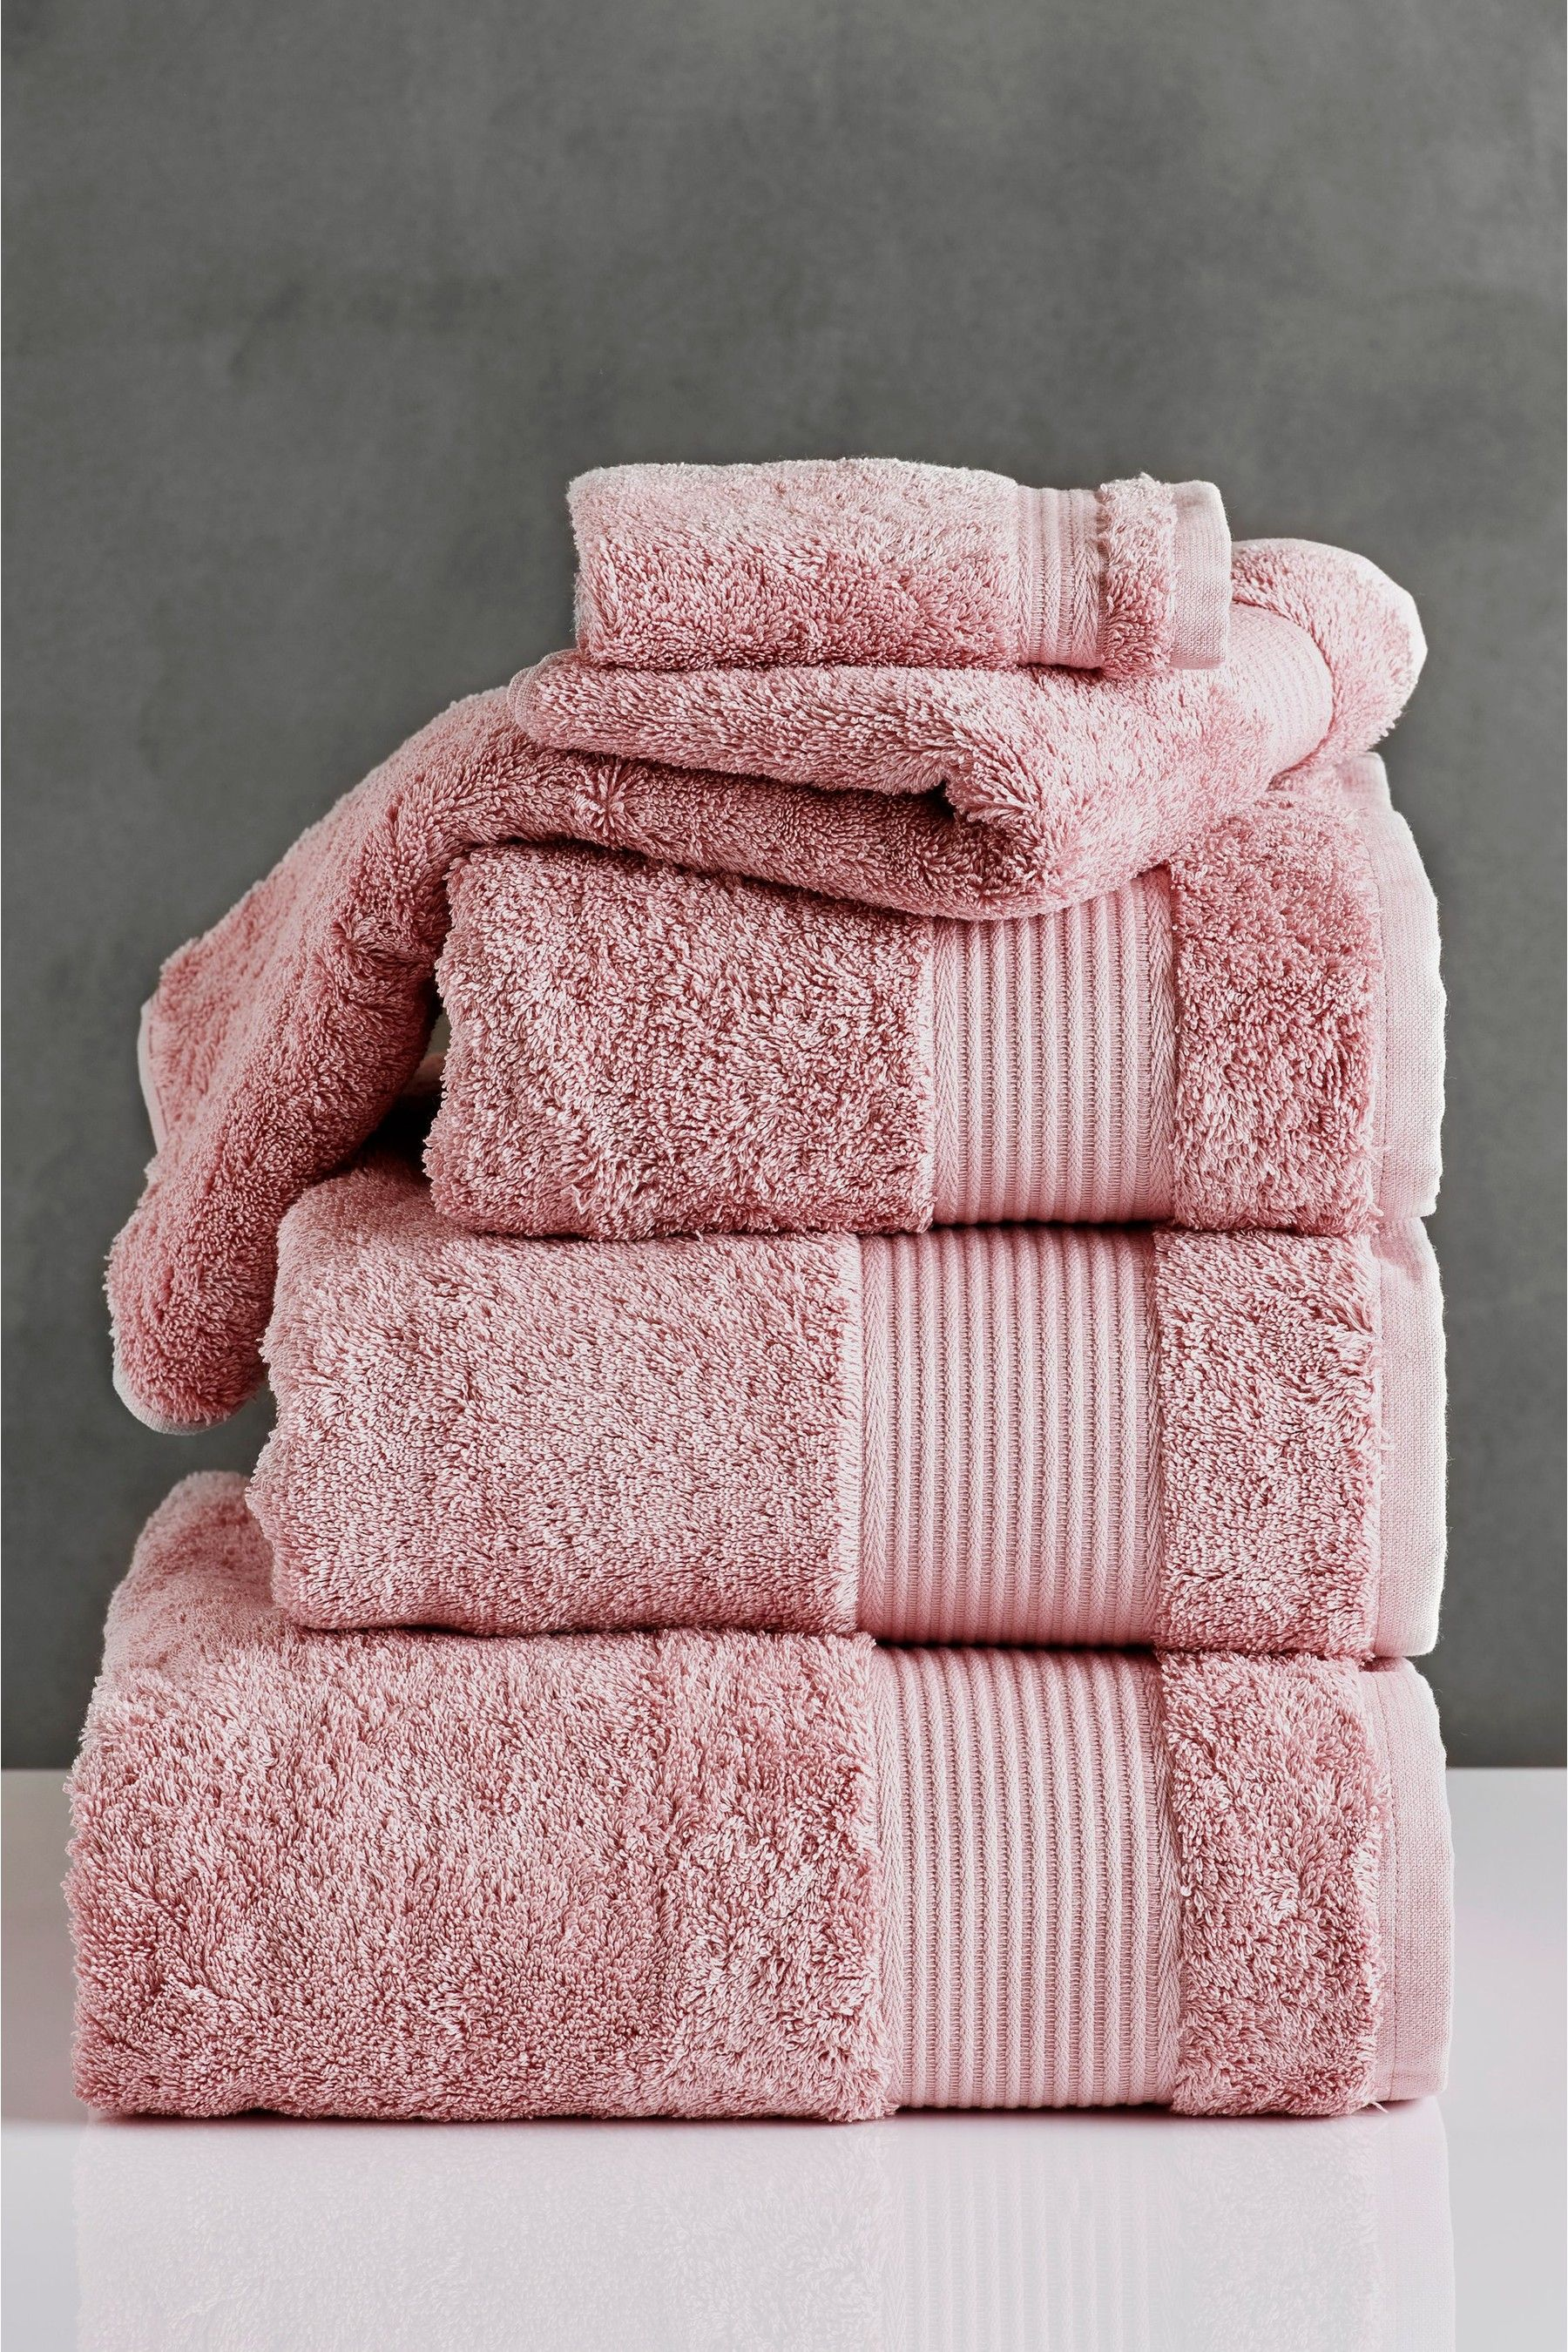 Egyptian Cotton Towels In 2020 With Images Egyptian Cotton